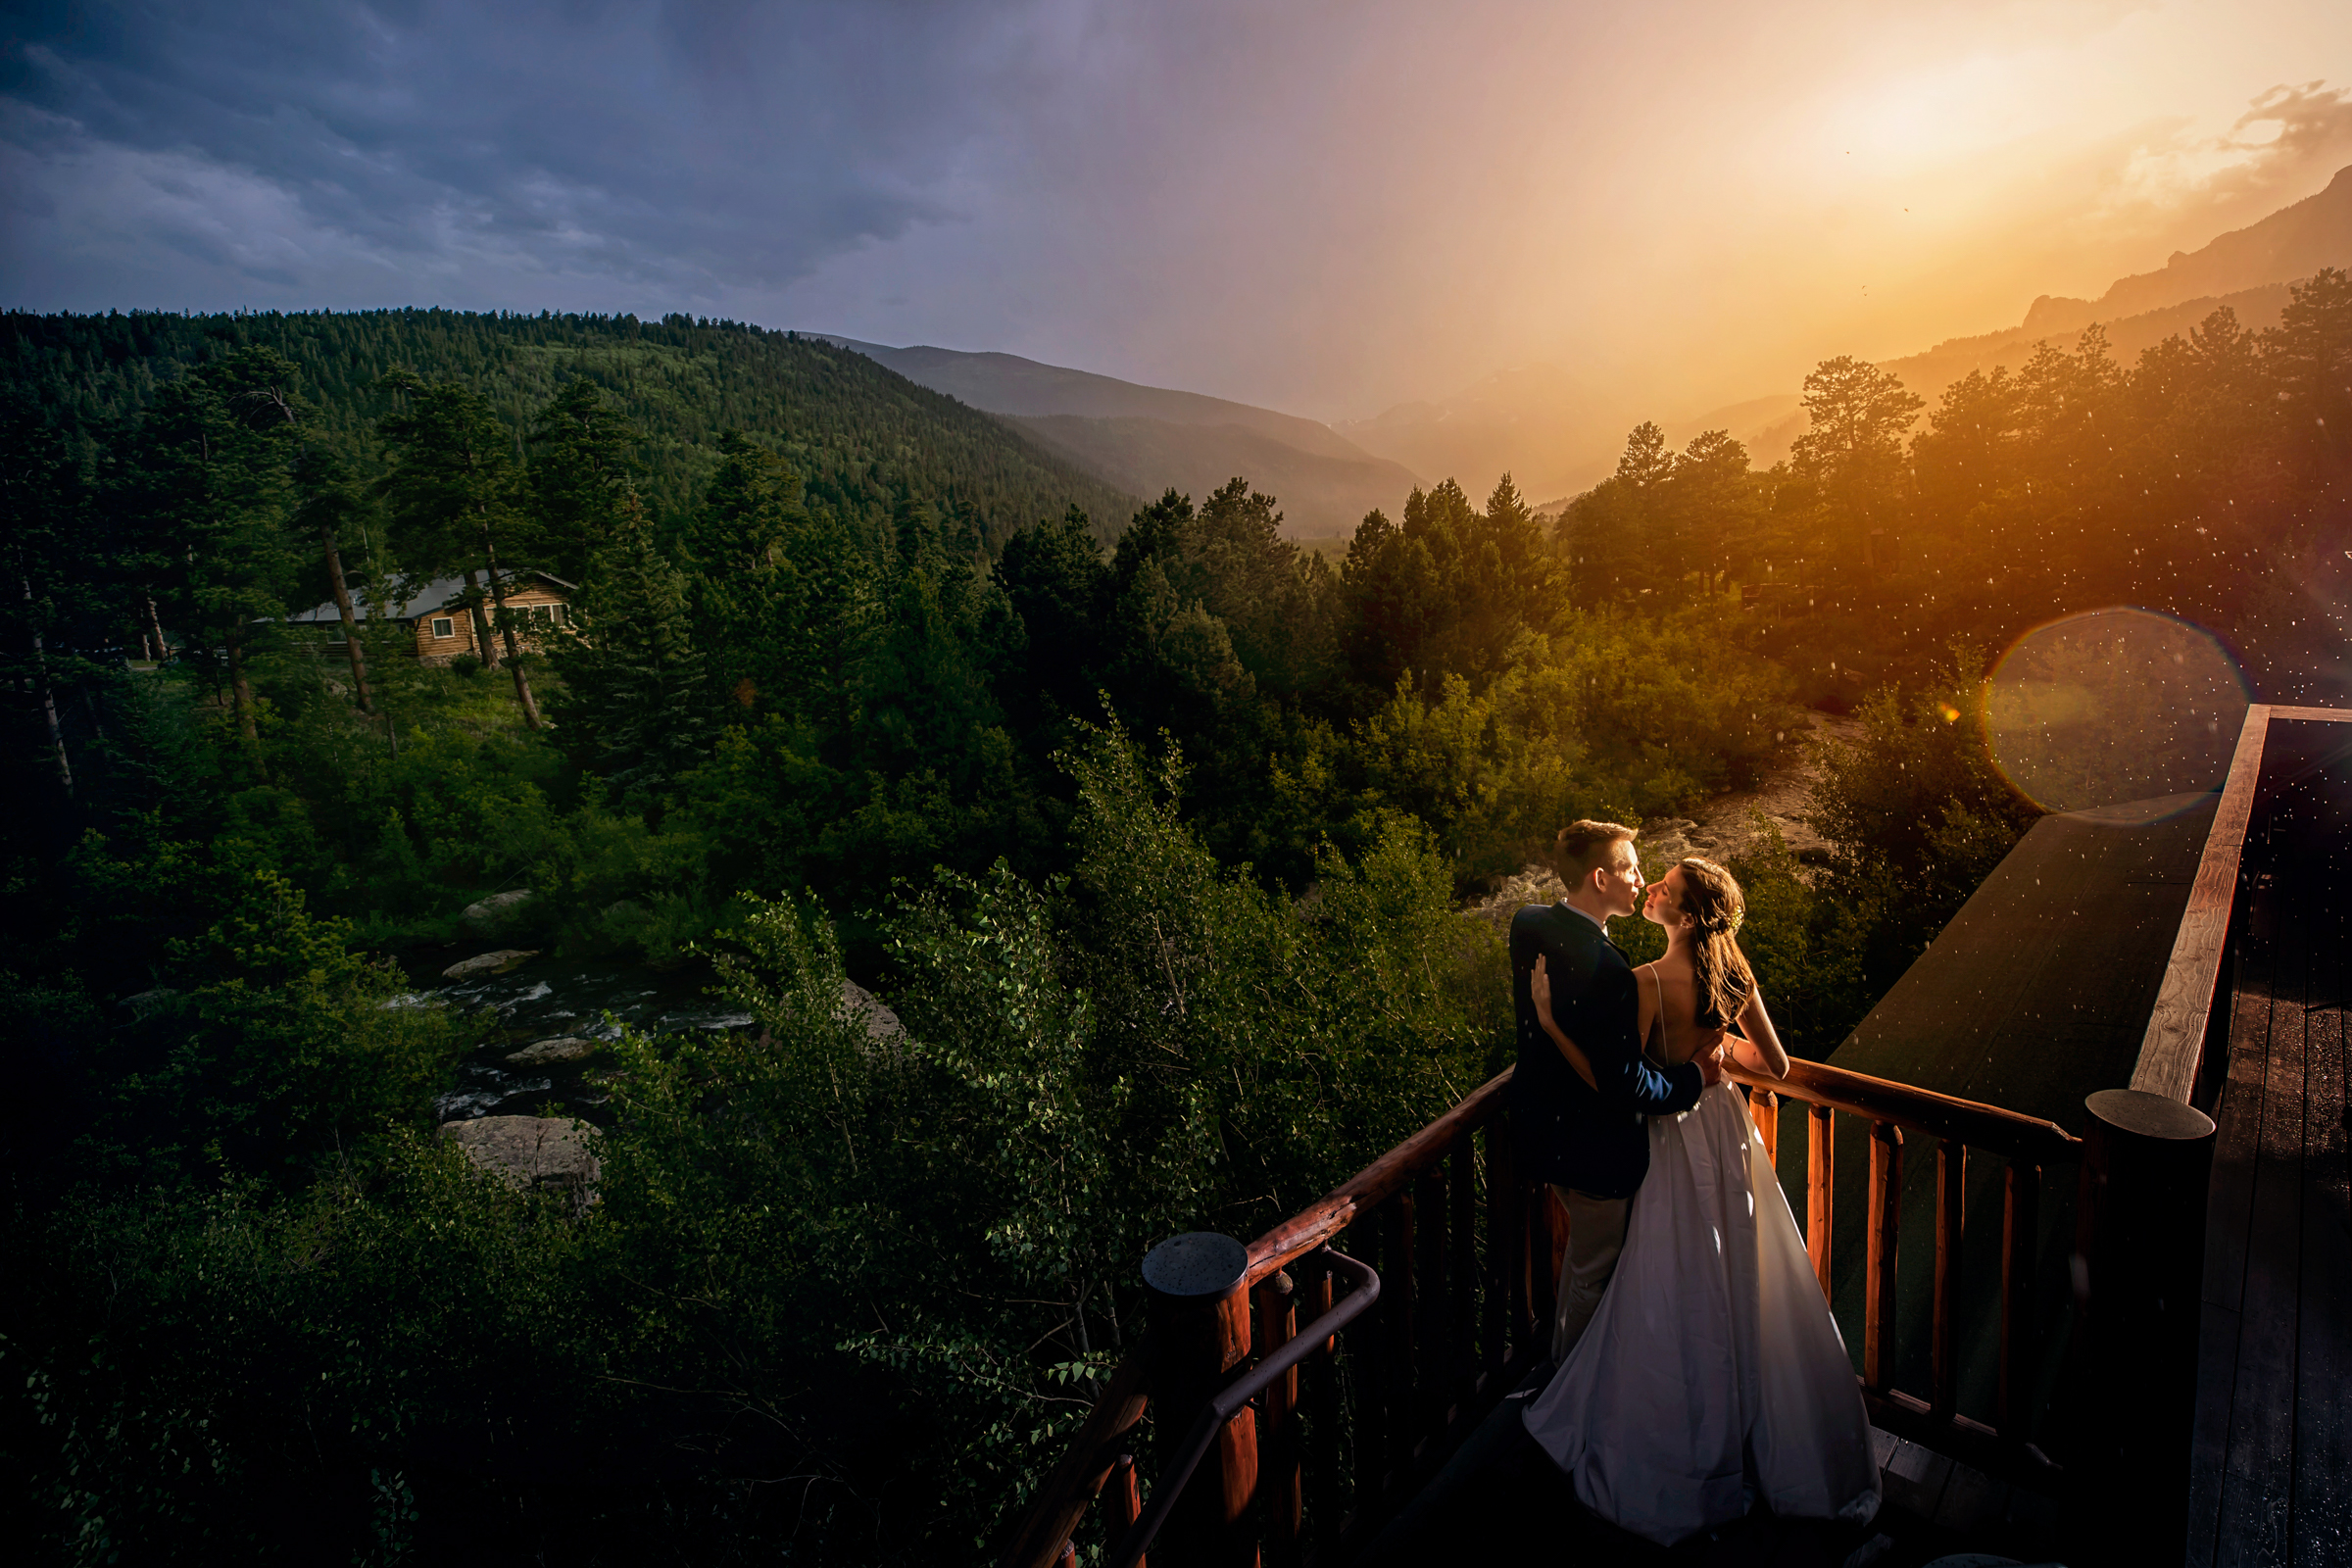 Bride and groom during golden hour on balcony - photo by Chrisman Studios